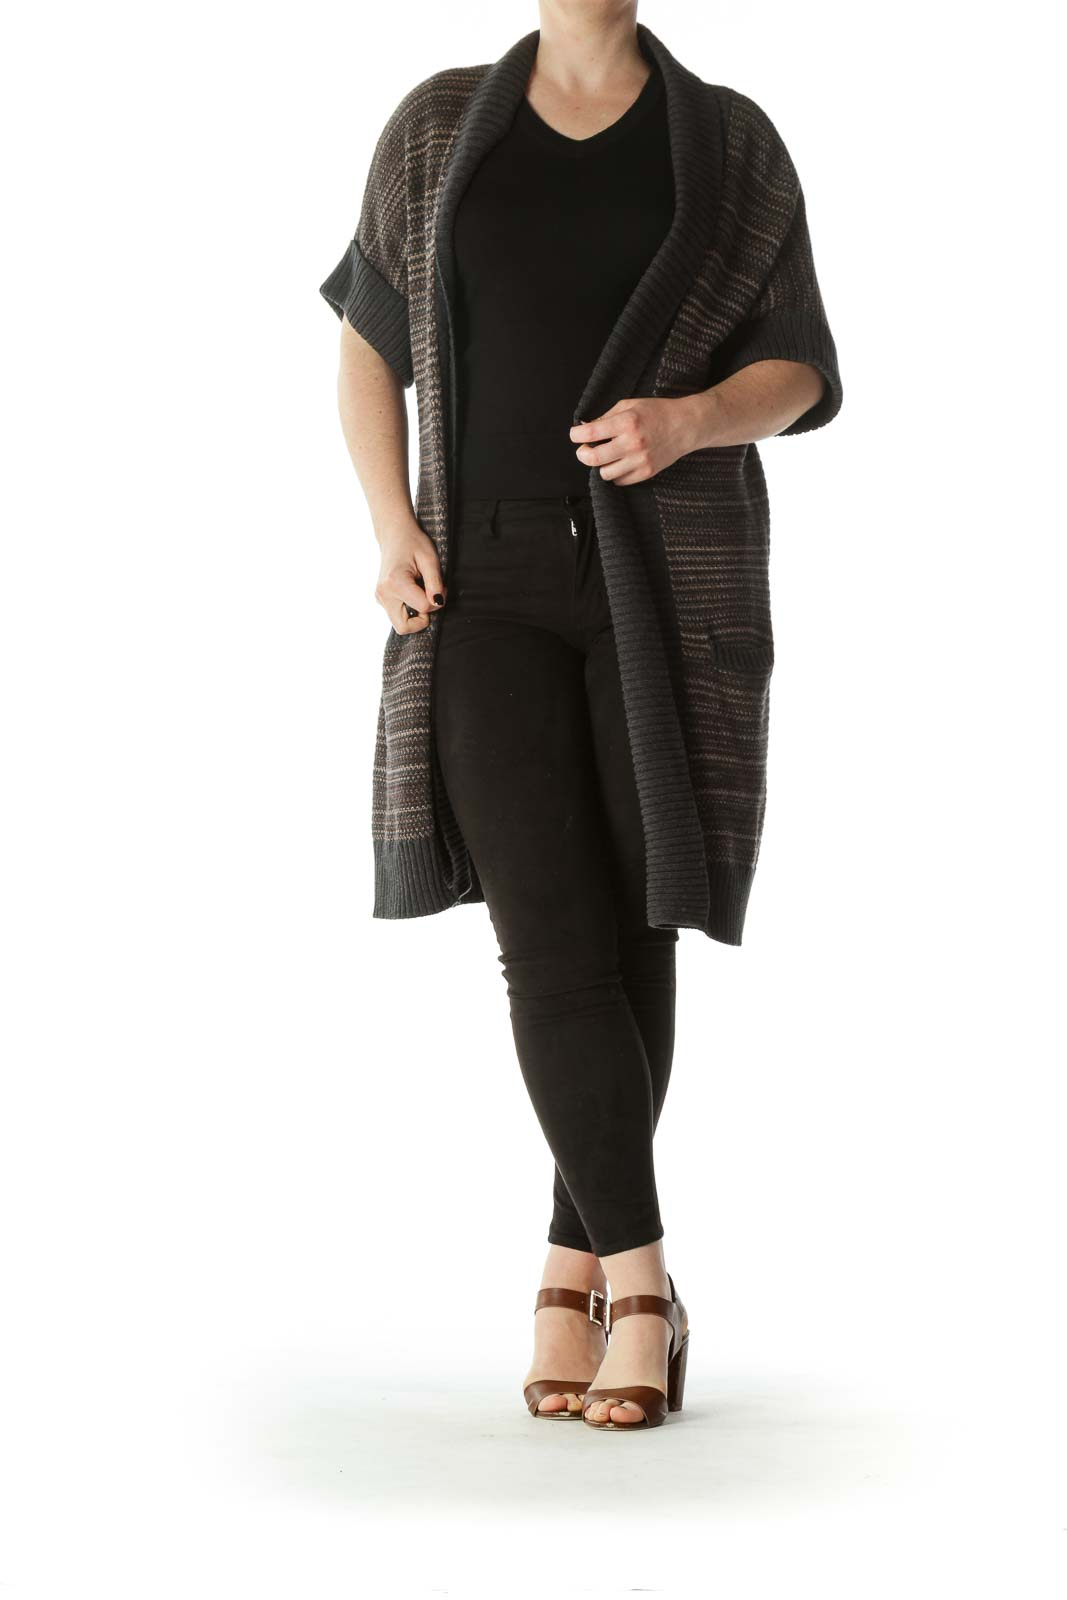 Blue Beige Brown 100% Cotton Knitted Short-Sleeve Cardigan